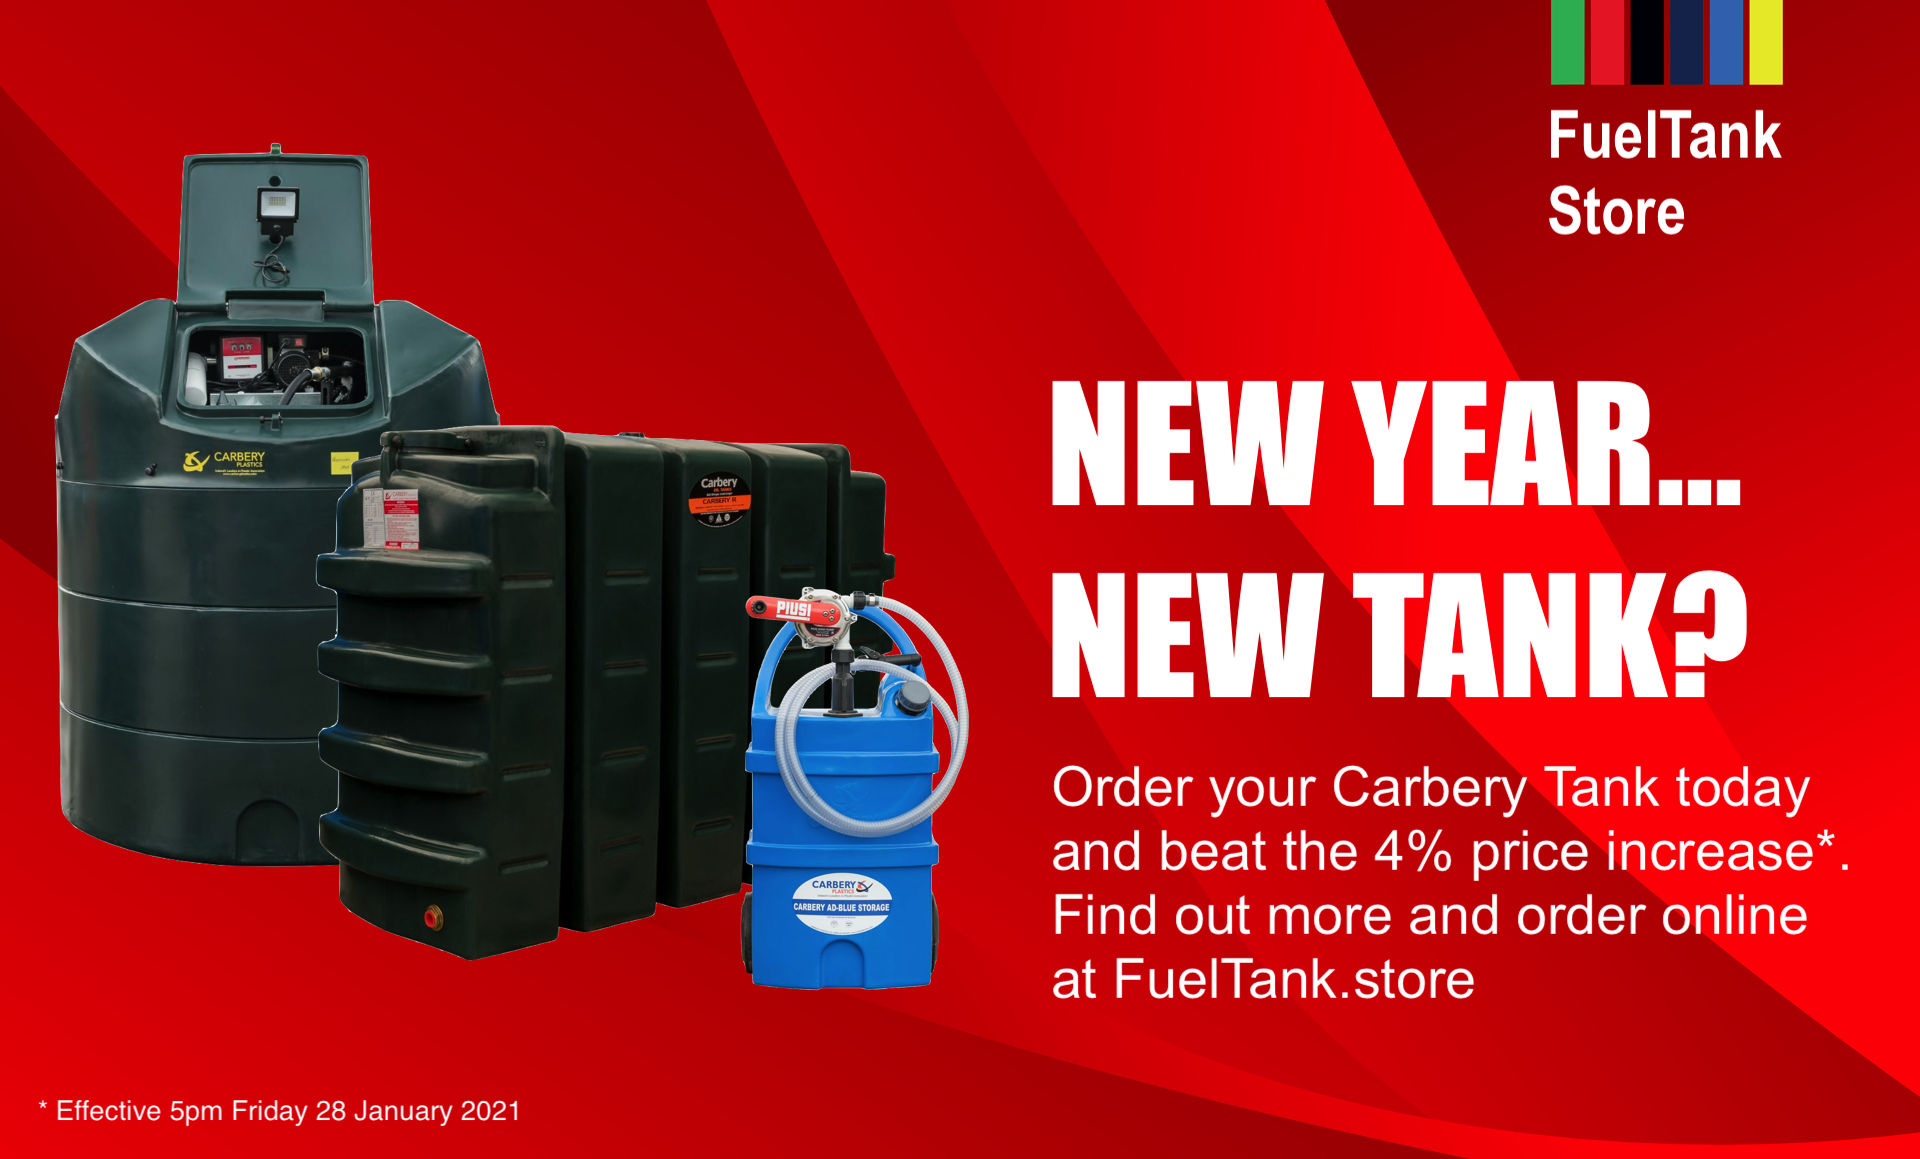 Collage of Carbery Heating Oil, Diesel and AdBlue Tanks on a red background. Call to action encourages customers to order their Carbery products before 28 January 2021 before a 4% price increase takes effect.